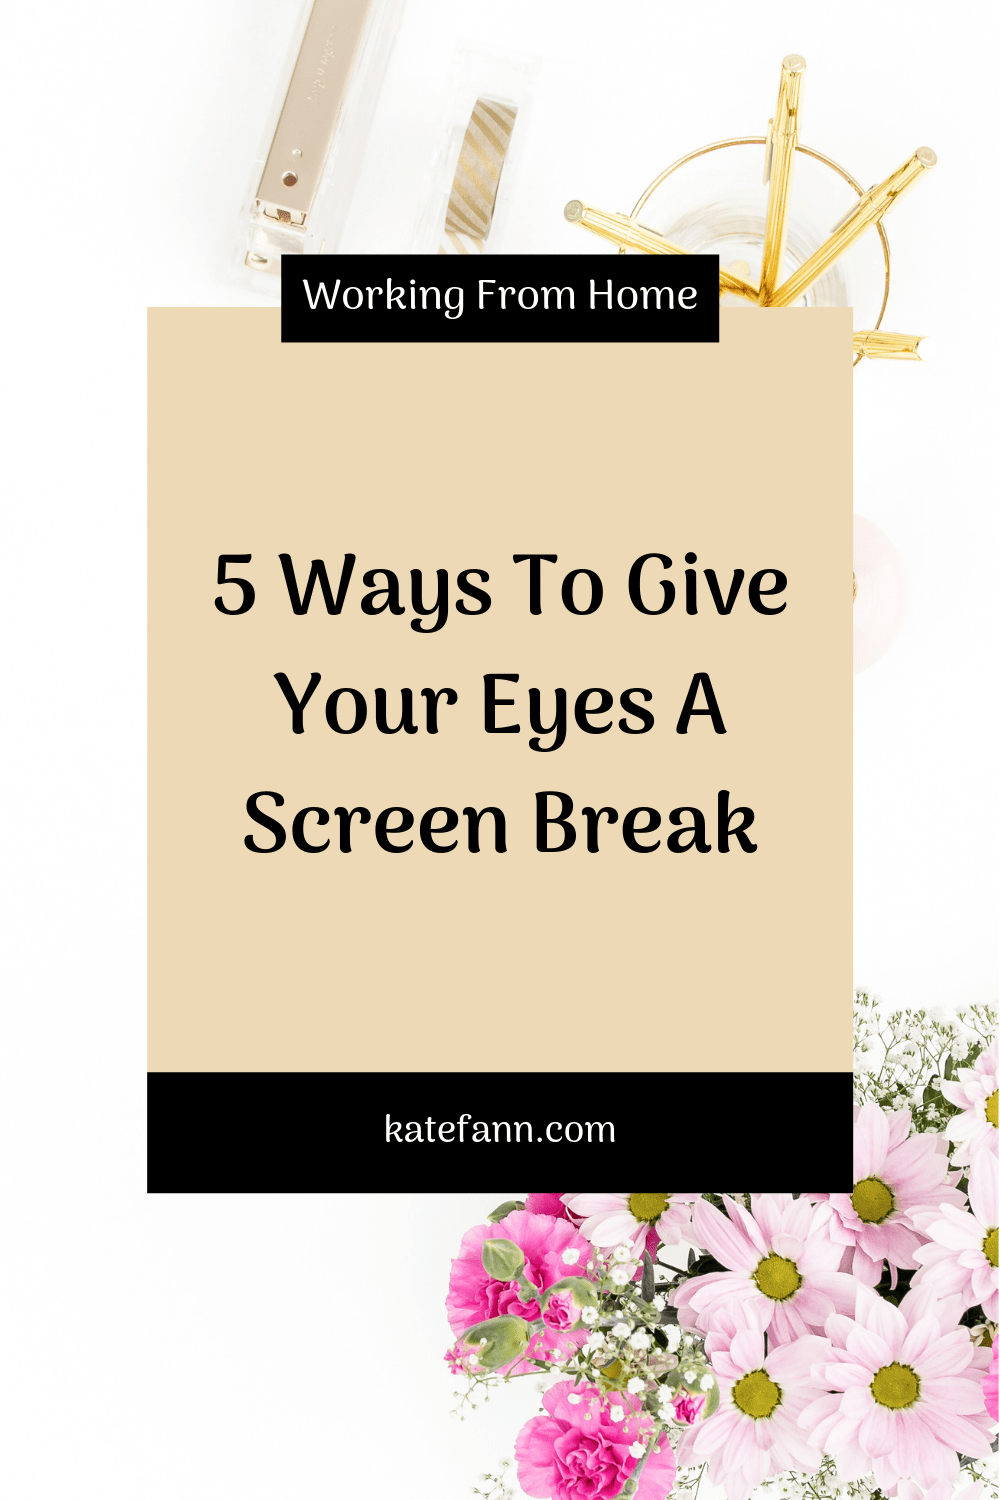 5 Ways To Give Your Eyes A Screen Break